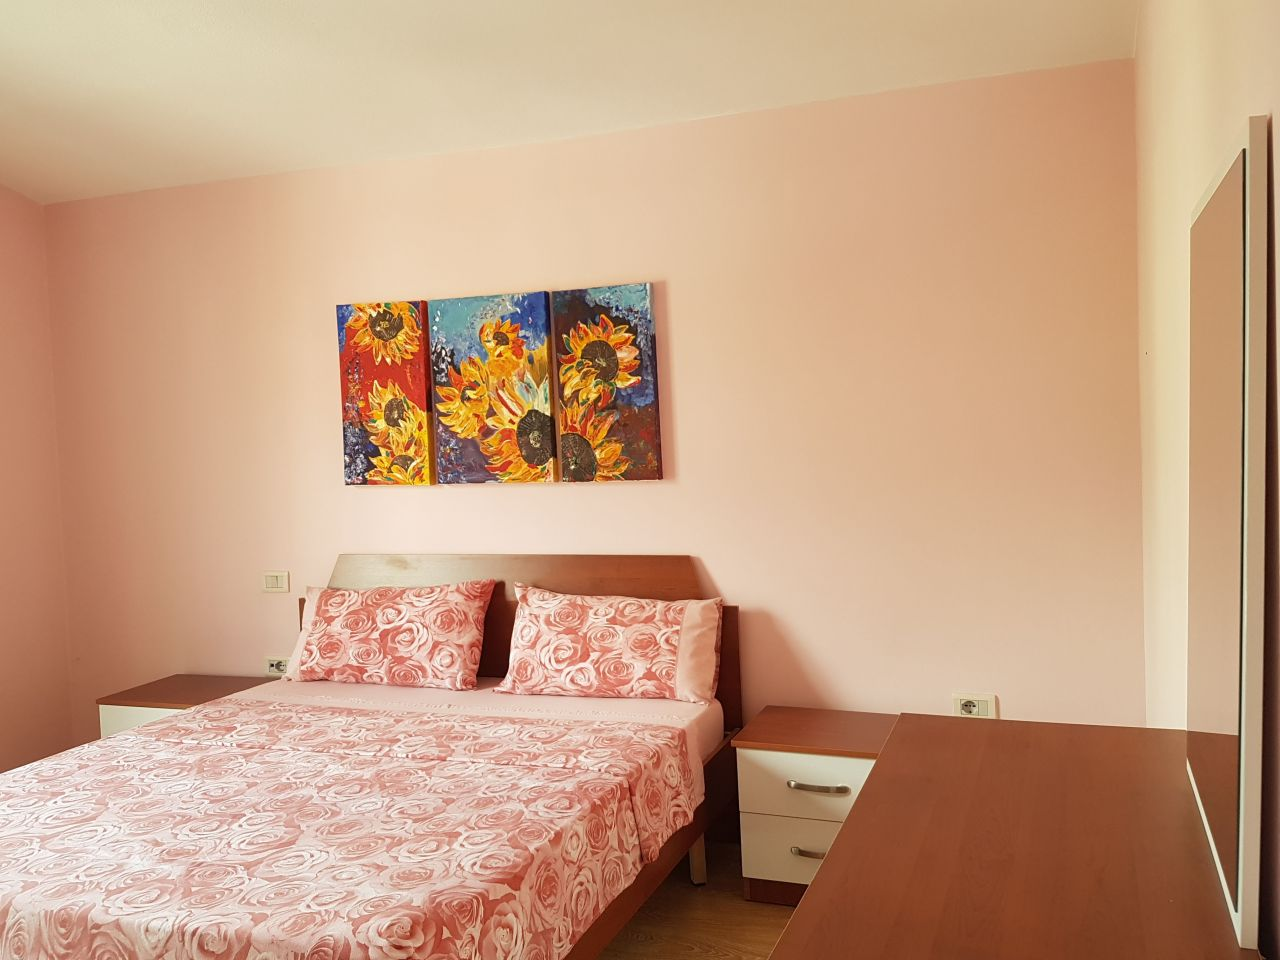 Two bedroom apartment for rent in Tirana within 10 minutes drive from Tirana center.